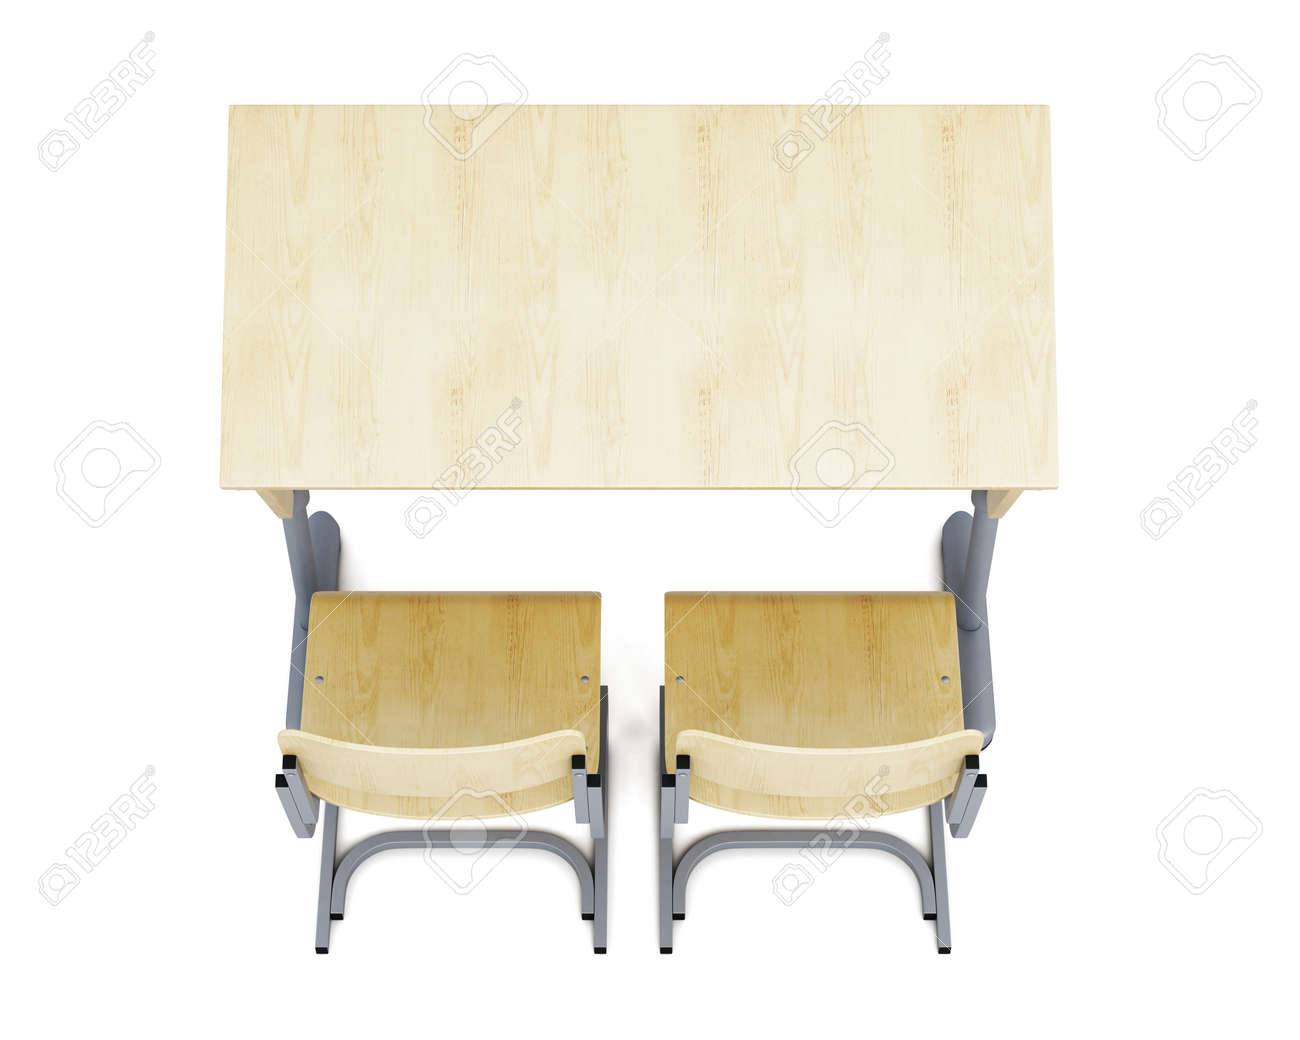 Genial Stock Photo   Top View Of A School Desk And Chairs Isolated On White  Background. 3d Rendering.